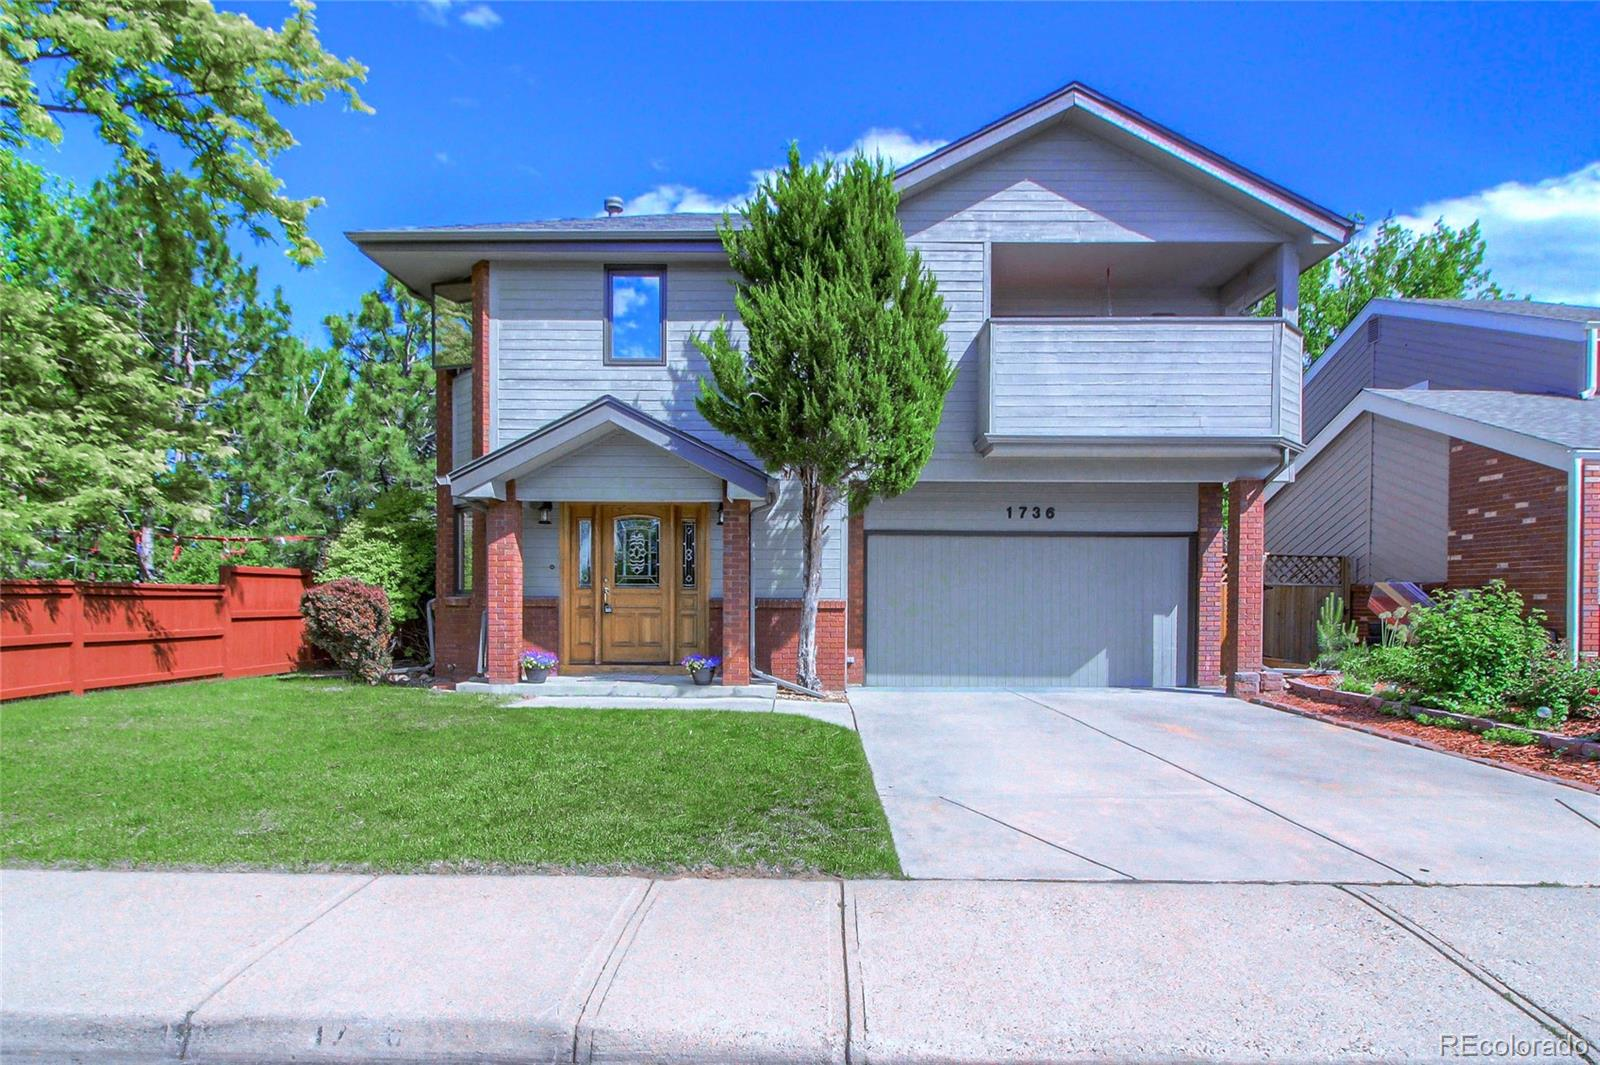 1736 W Barberry Circle Property Photo - Louisville, CO real estate listing